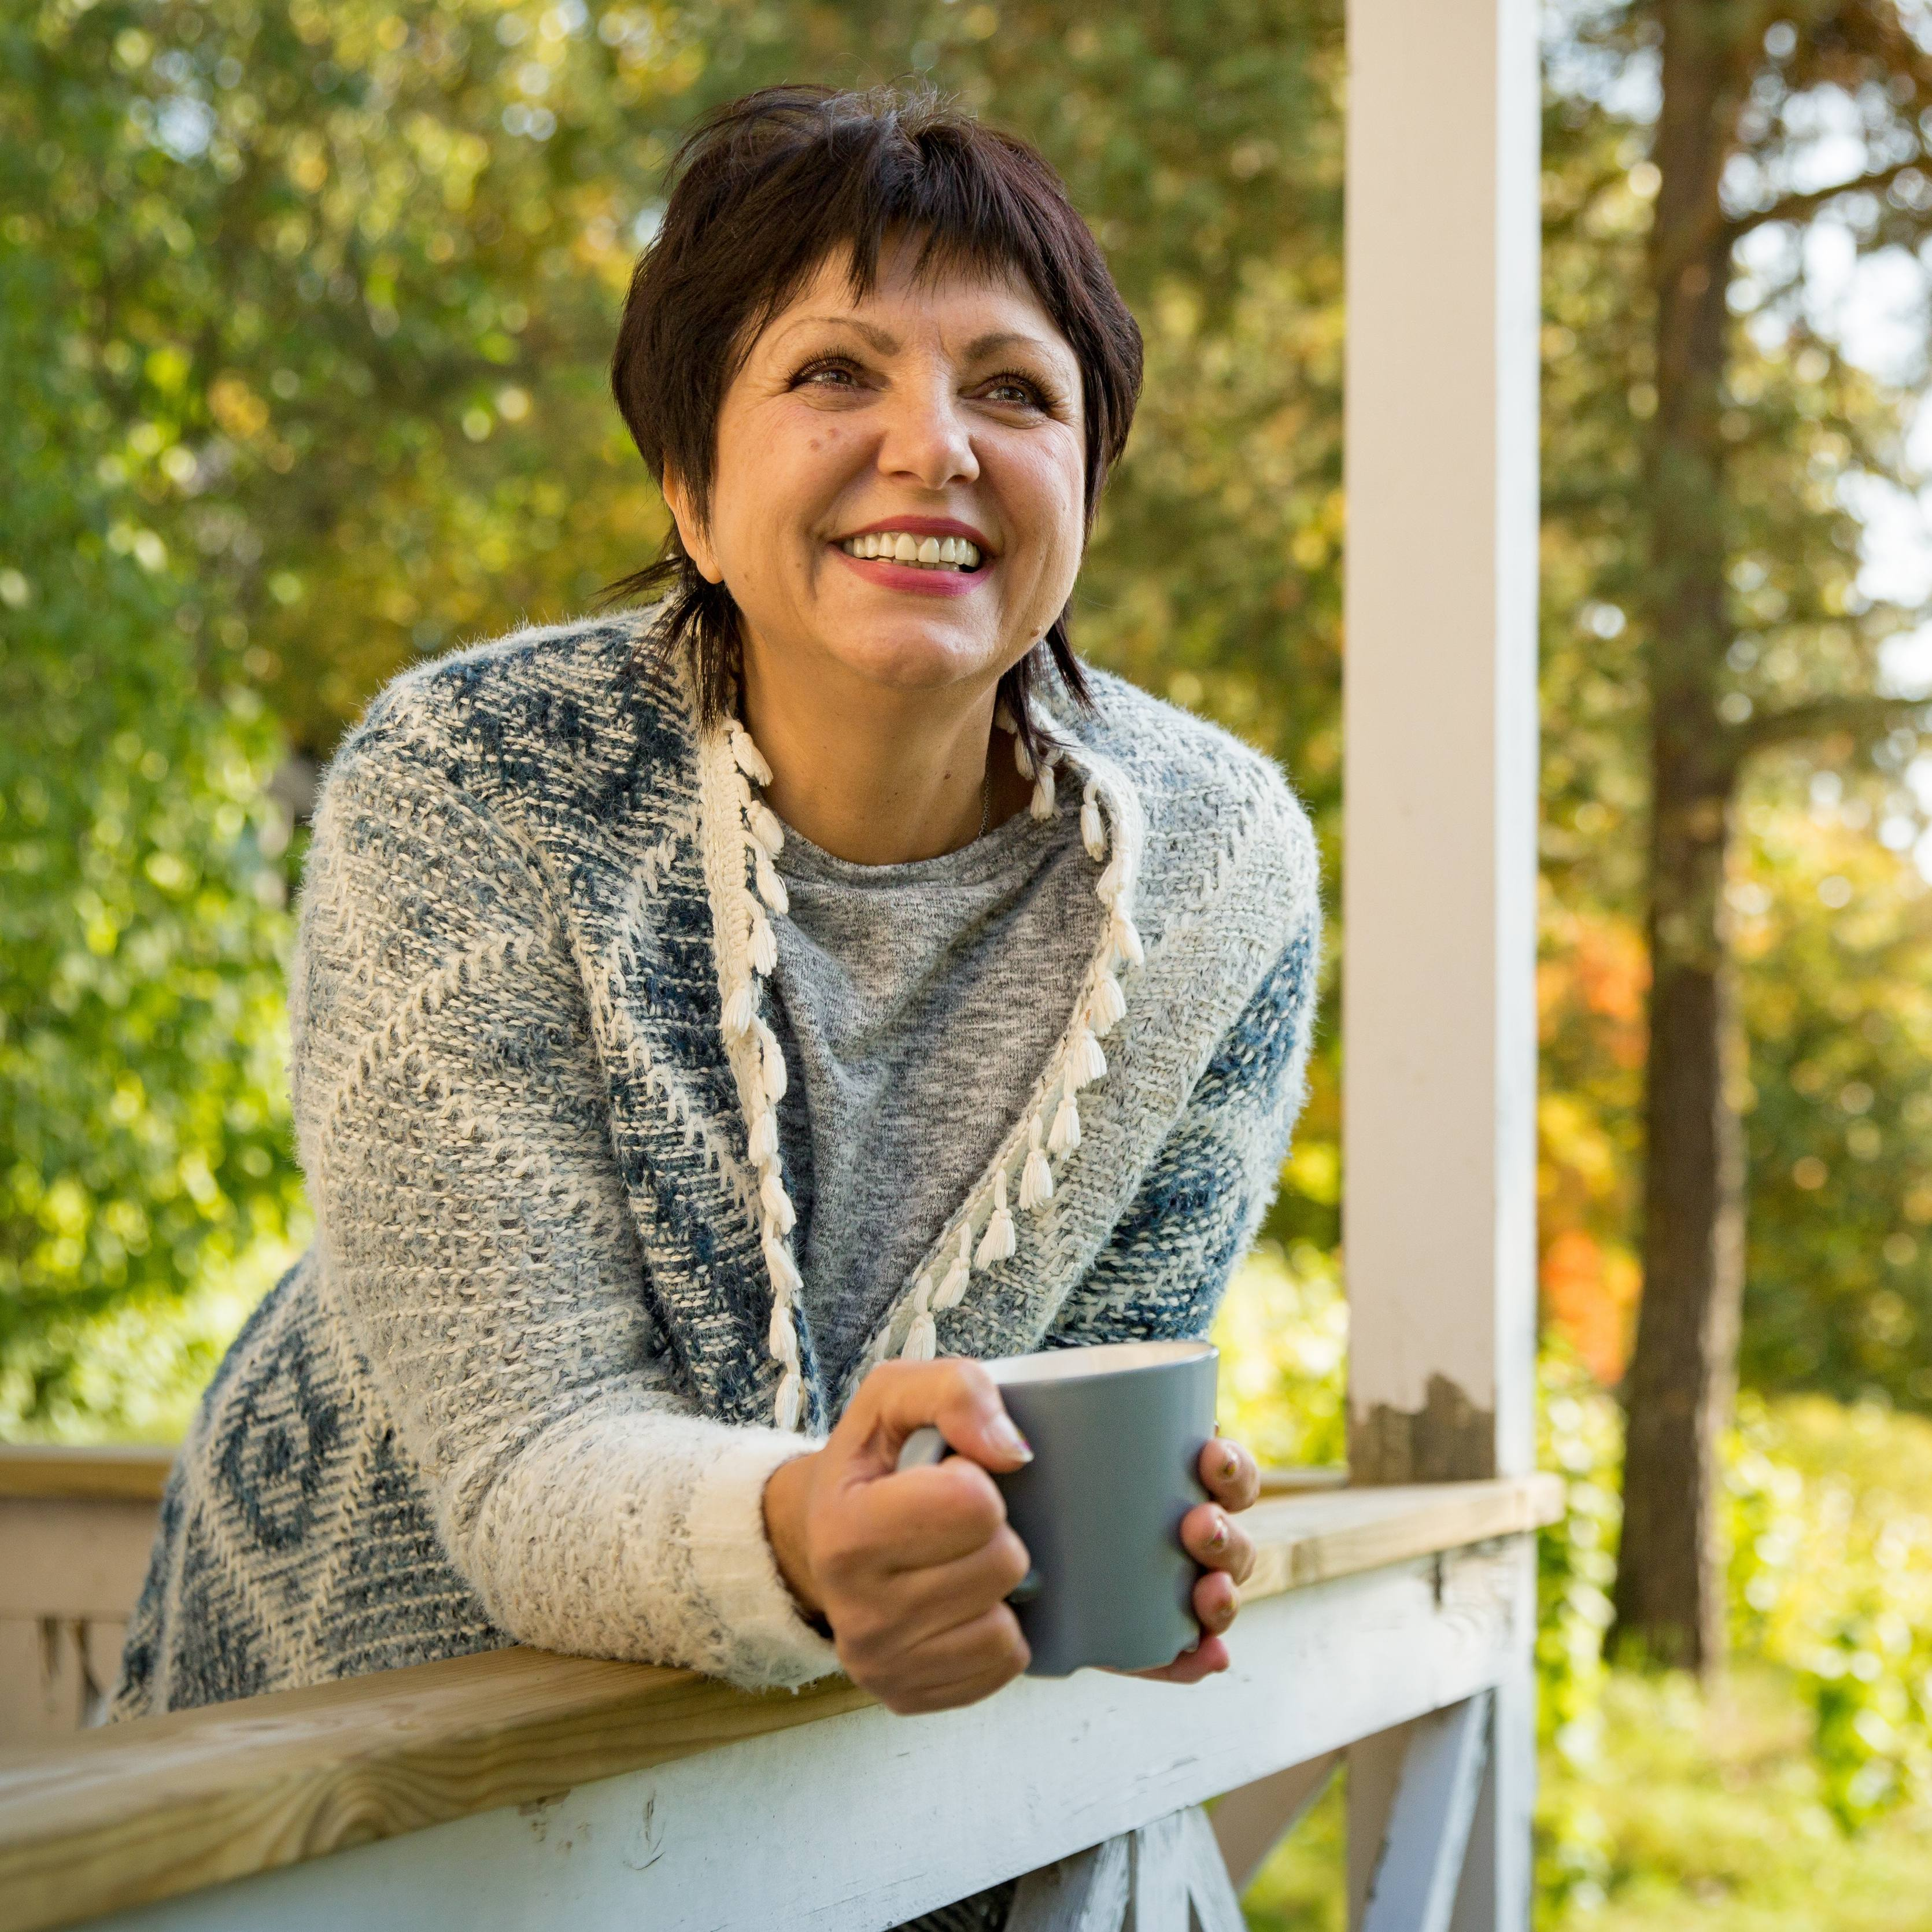 a middle-aged woman in a sweater, smiling and leaning over a porch or balcony railing, holding a cup of coffee